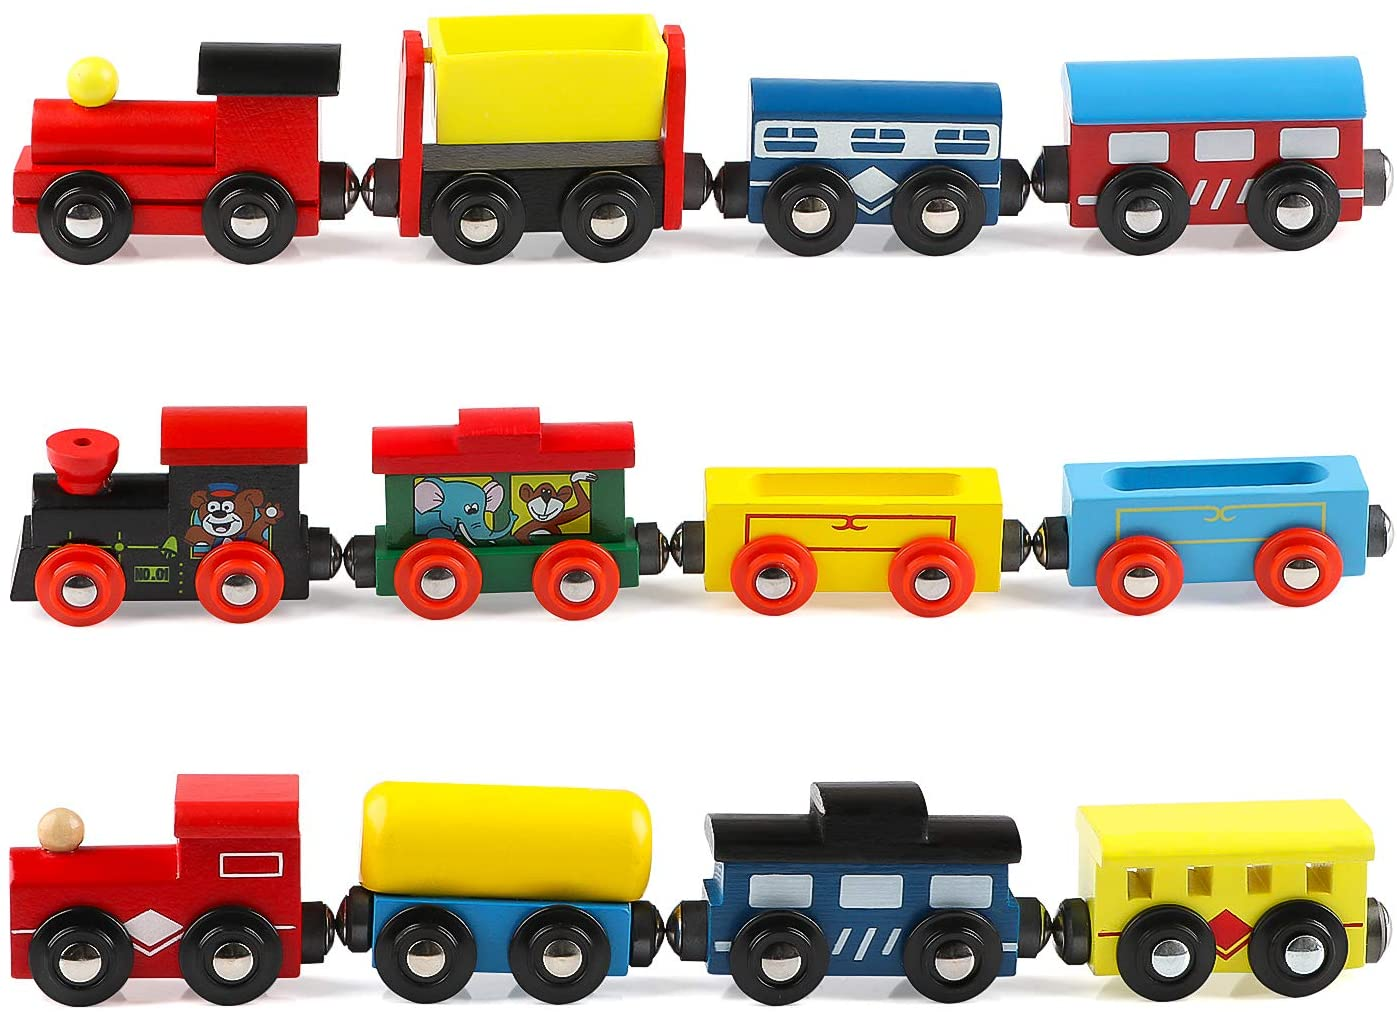 Joqutoys 12 PCS Wooden Train Cars for Toddler, Locomotive Tank Engines and Wagons for Toy Train Tracks, Wooden Train Set Trains Toy Compatible with Thomas Wooden Railway